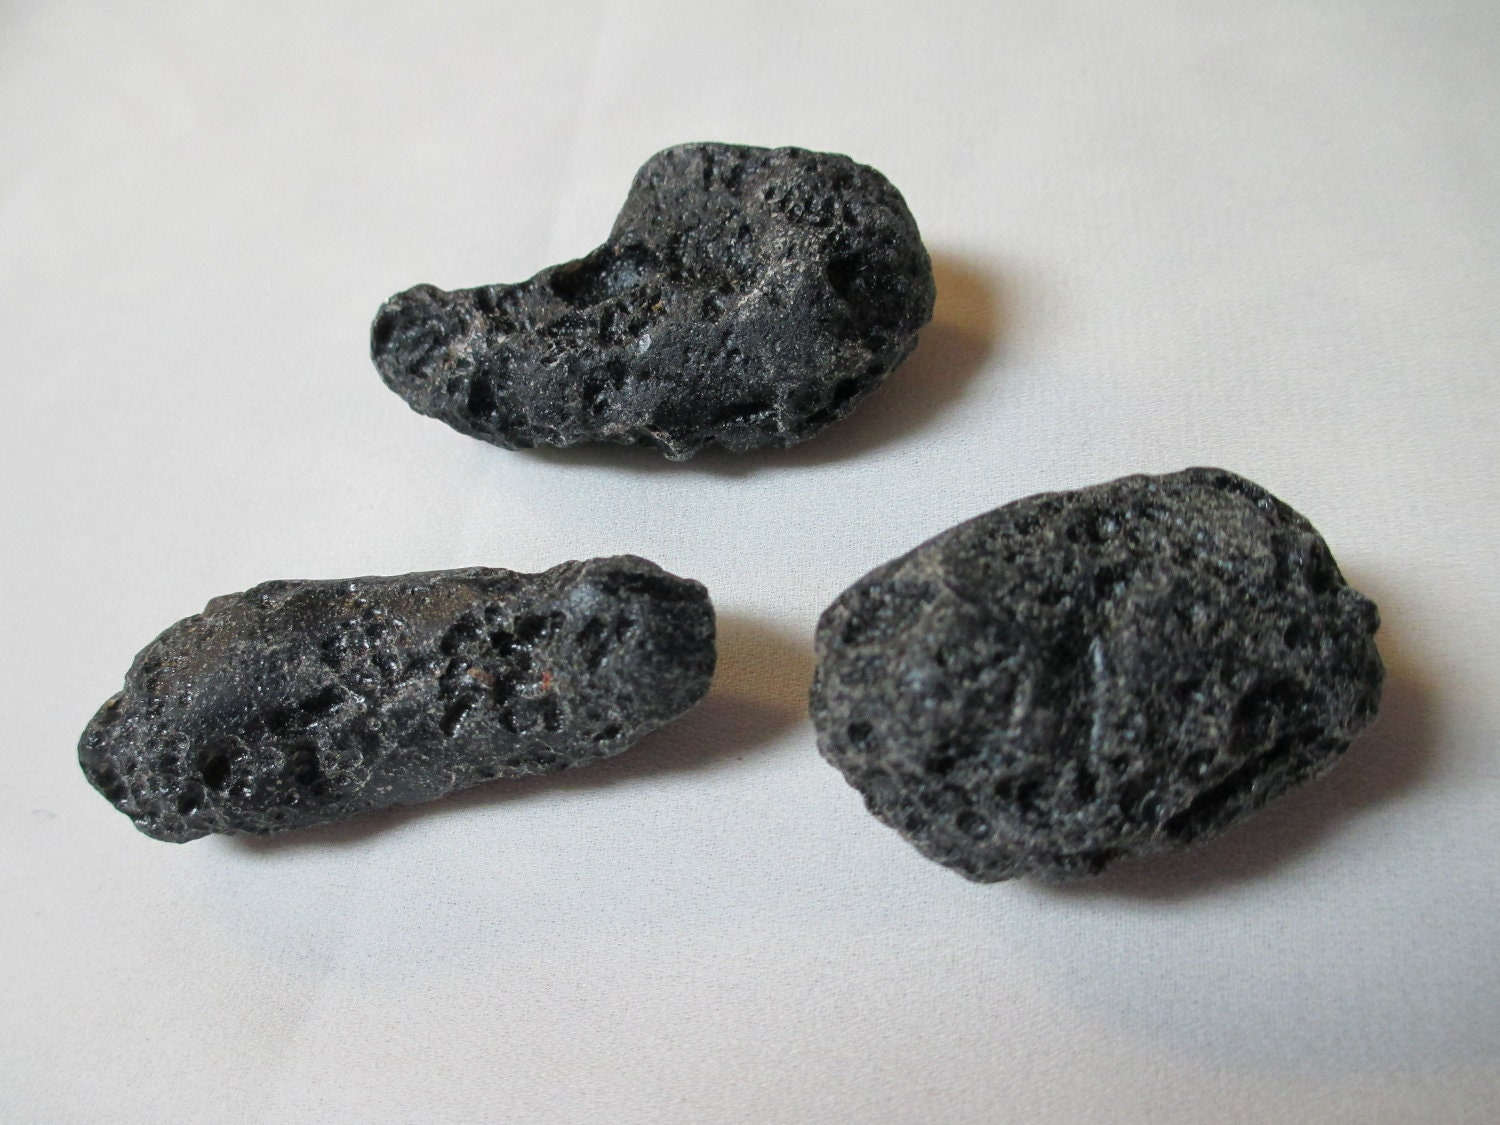 tektite meteorite stones 3 small specimen rocks natural. Black Bedroom Furniture Sets. Home Design Ideas